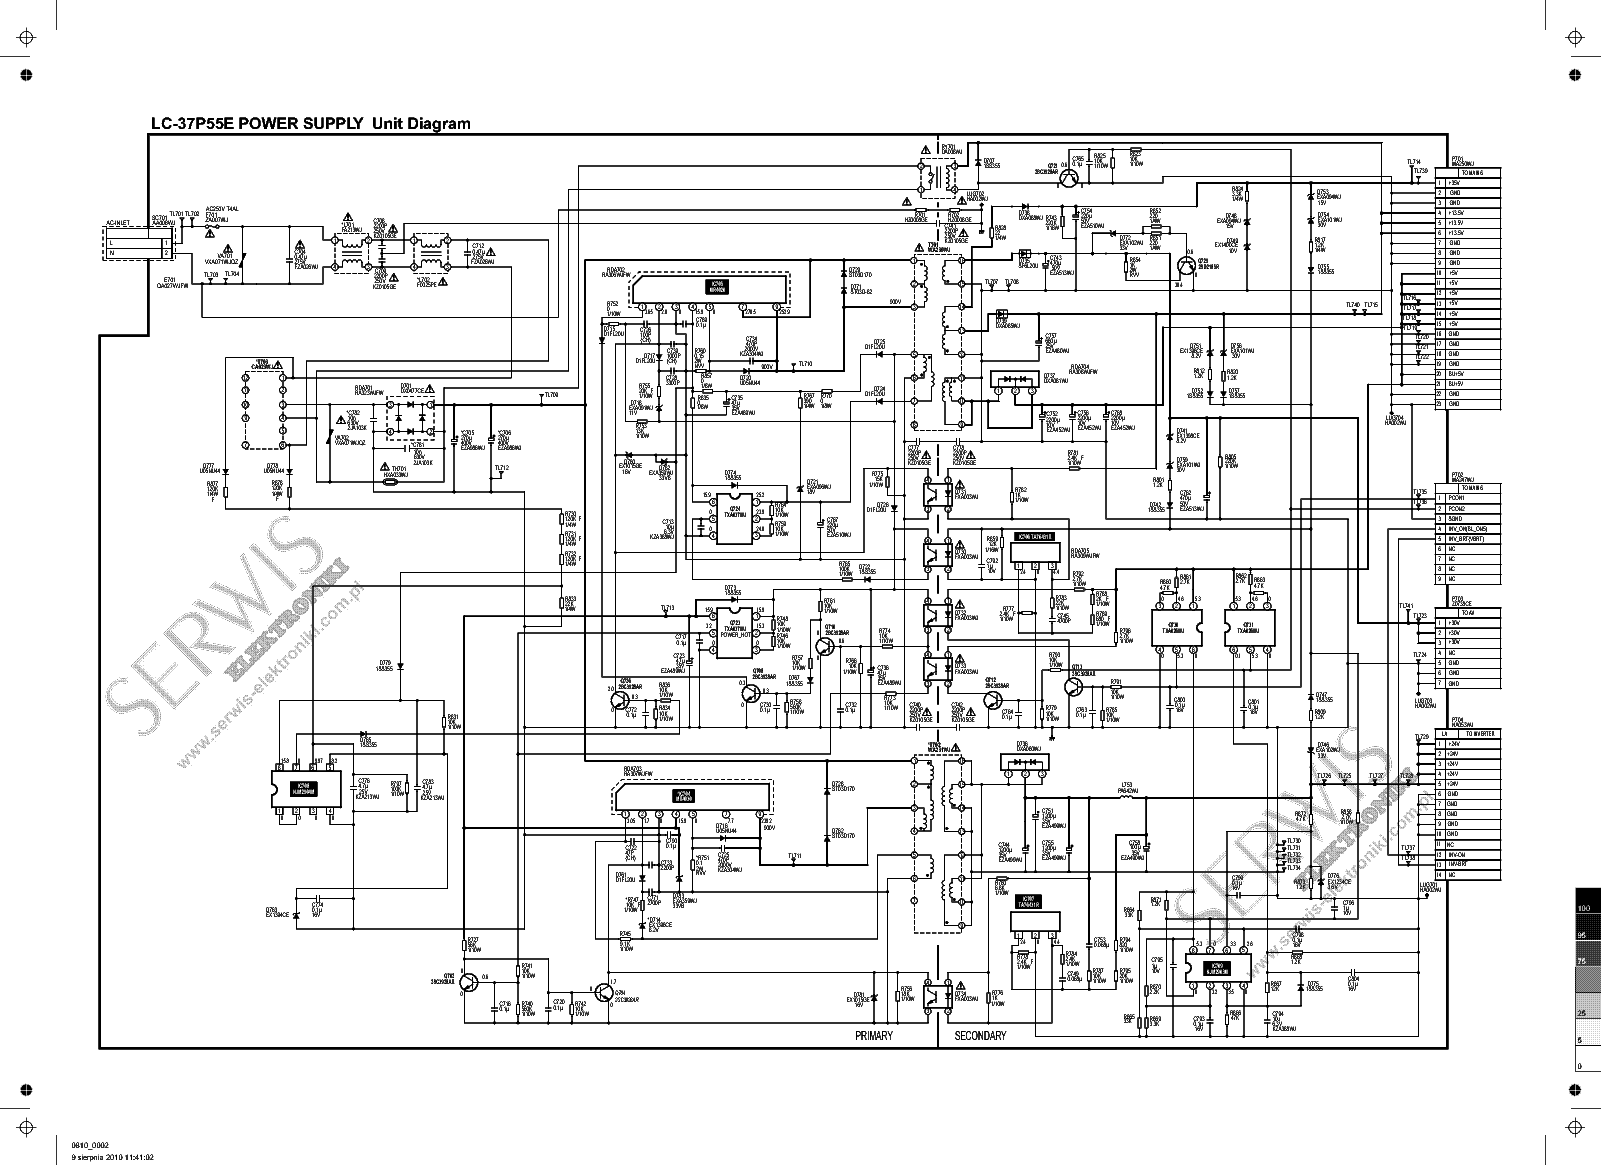 Power Supply Unit Diagram